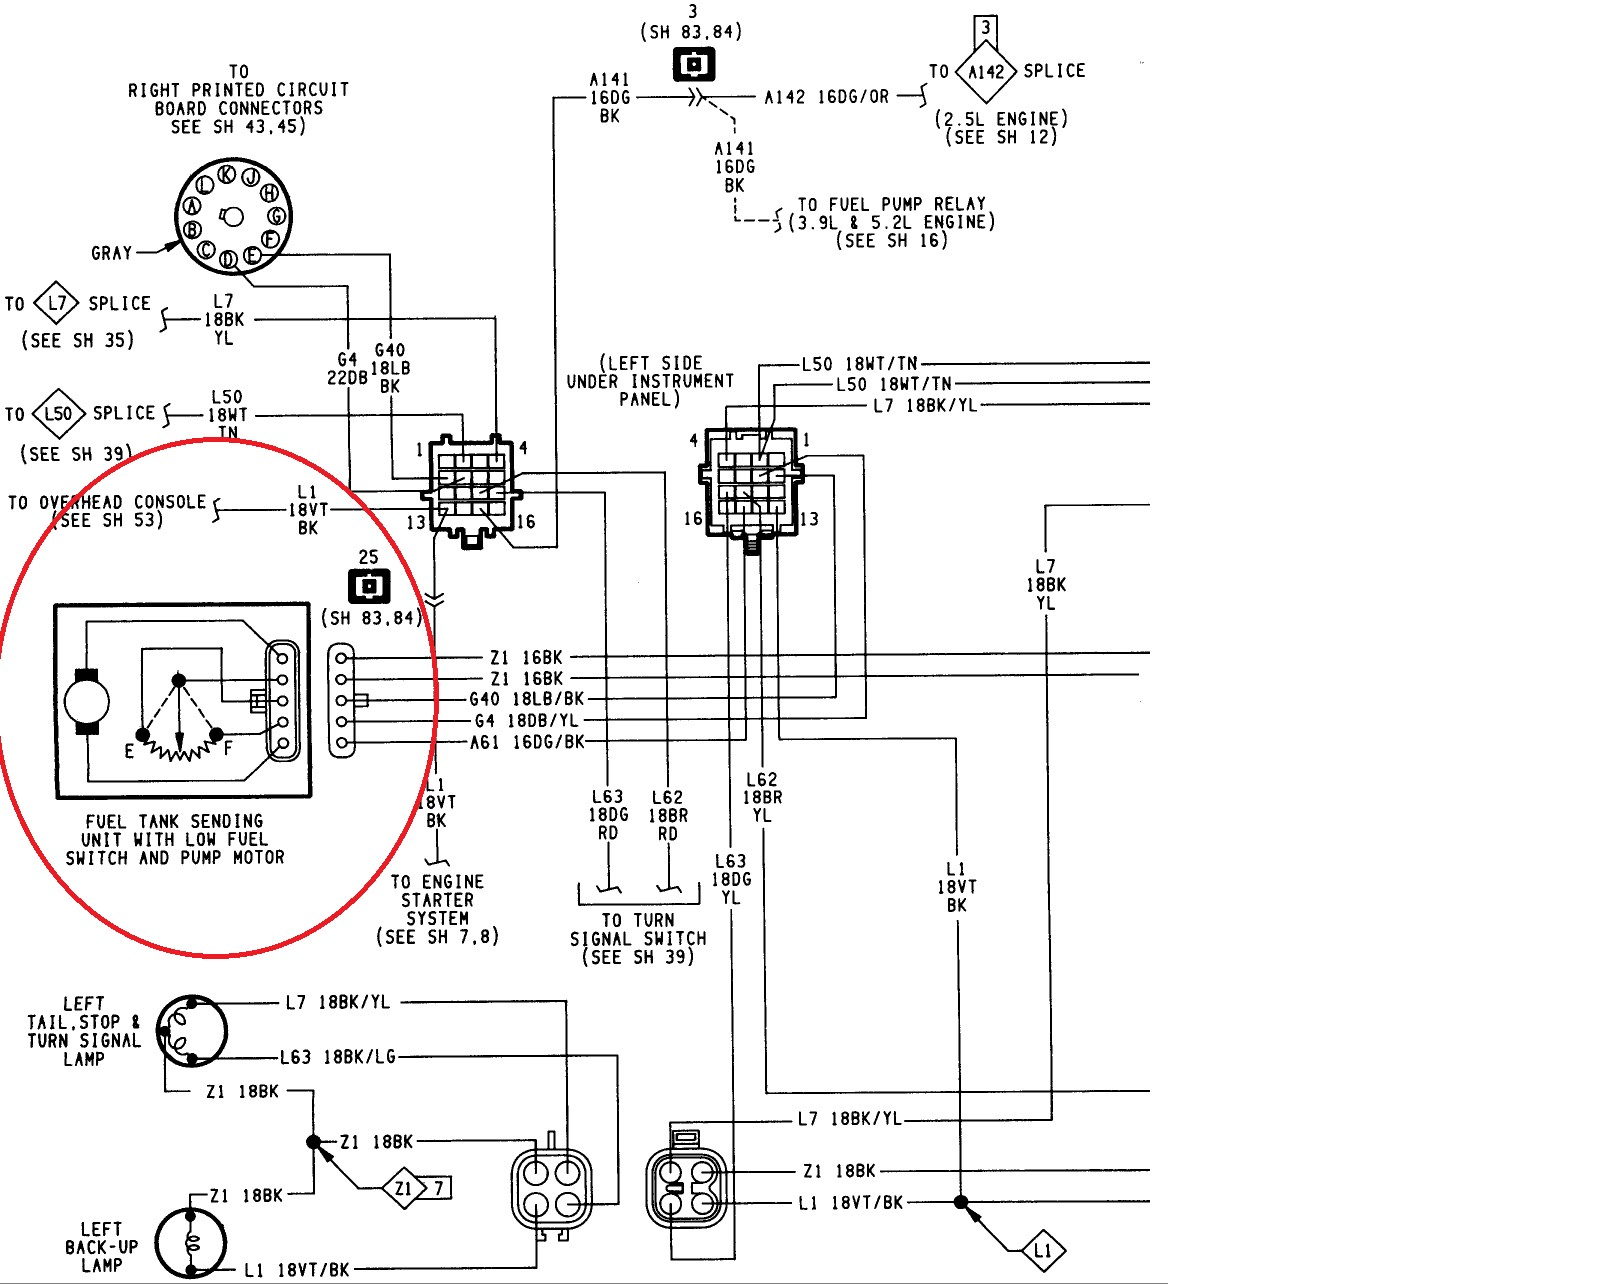 hight resolution of car fuel gauge wiring diagram wiring librarydiy fuel pump gauge trouble shooting no dial up friendly